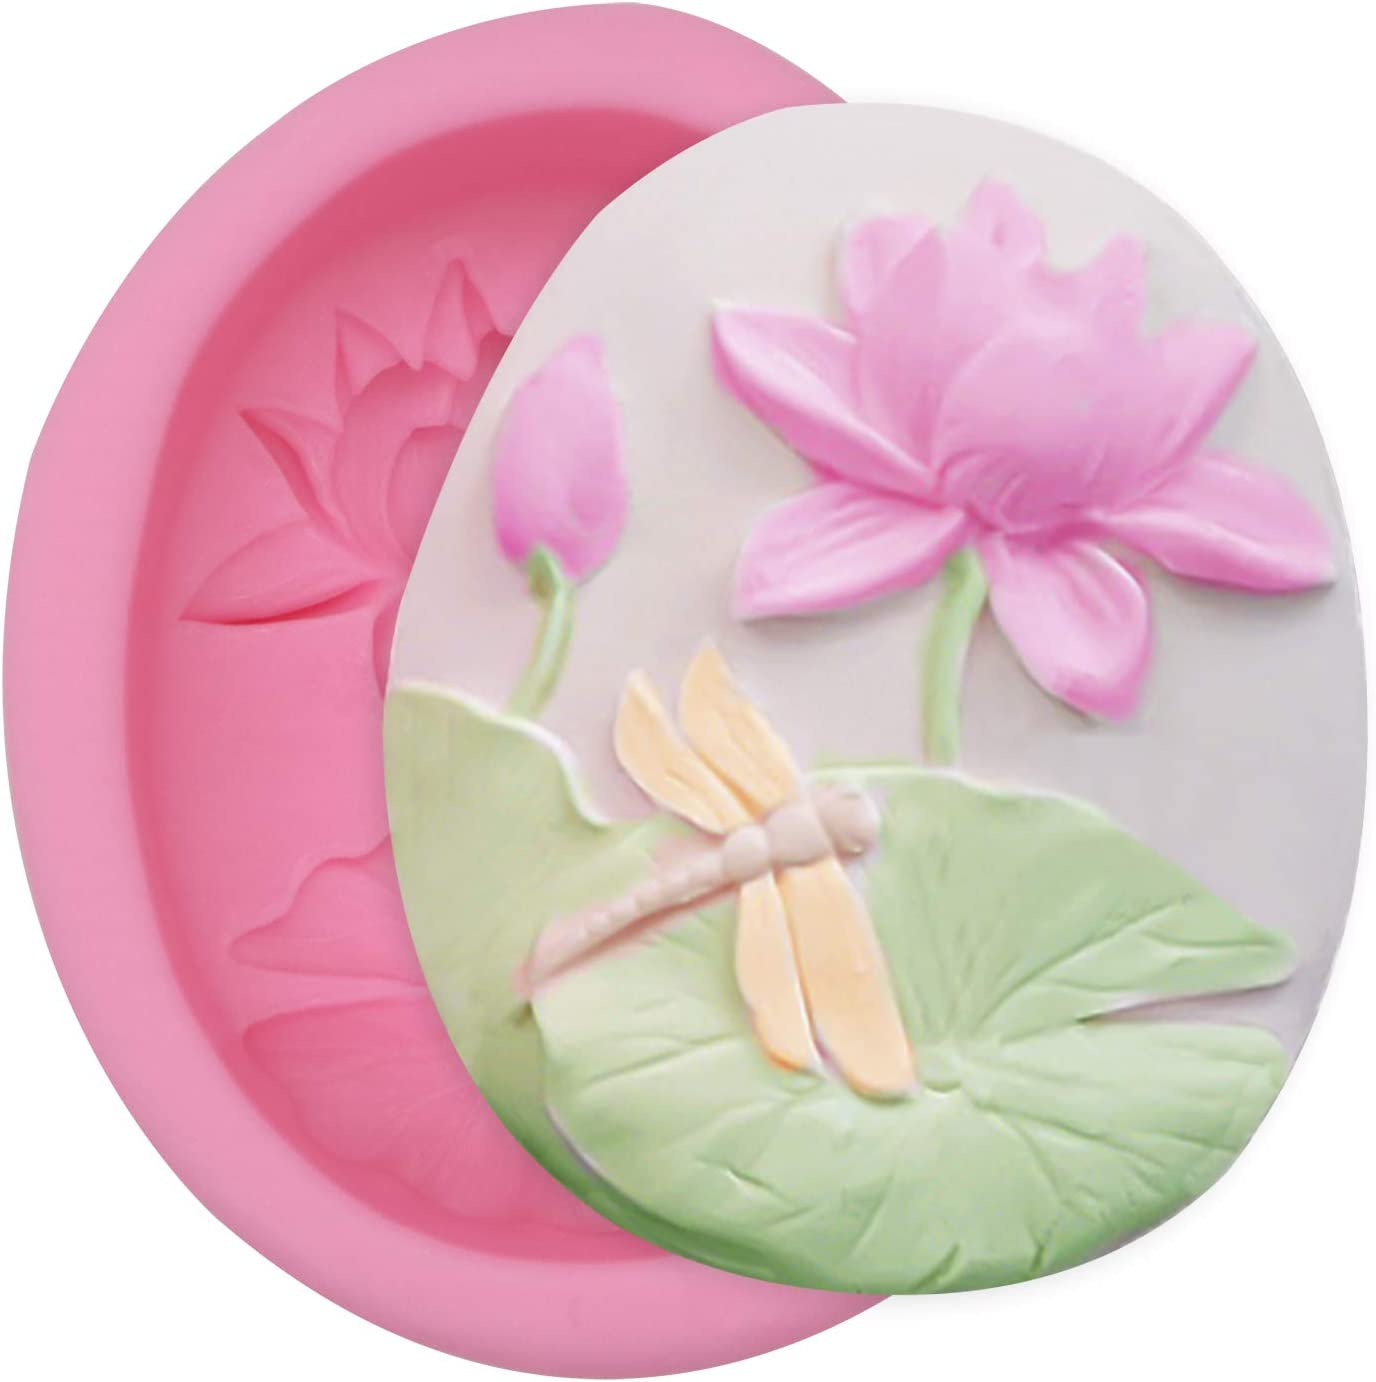 Meiyouju Lotus leaf lotus Candy Molds Silicone,Food Grade Silicone Cake Molds ,Candy, Icing, Biscuit Decor, Chocolate, Polymer Clay, Resin Mold, Epoxy